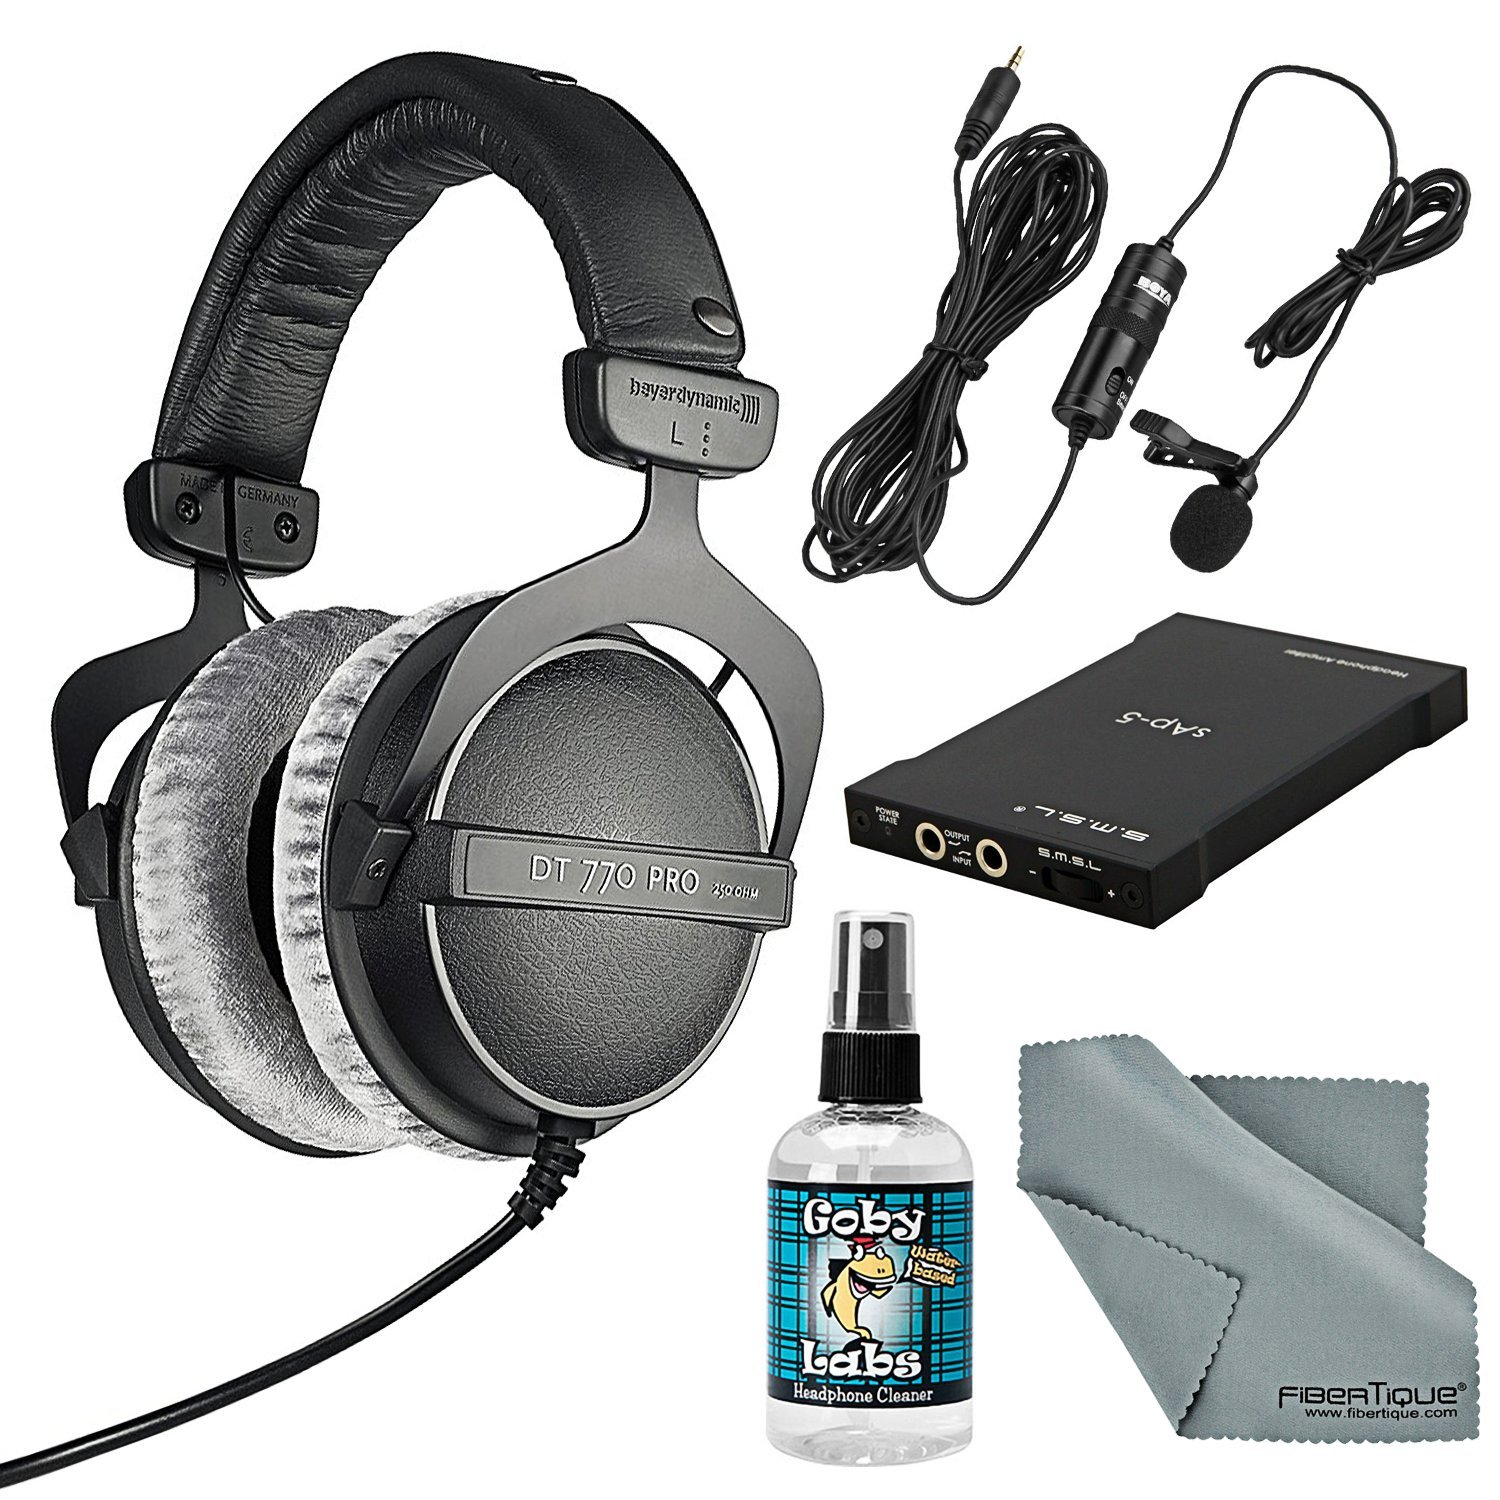 Beyerdynamic DT770 PRO 250 ohms Headphones with Amplifier, Cleaner, Lavalier Mic, and FiberTique Cleaning Cloth